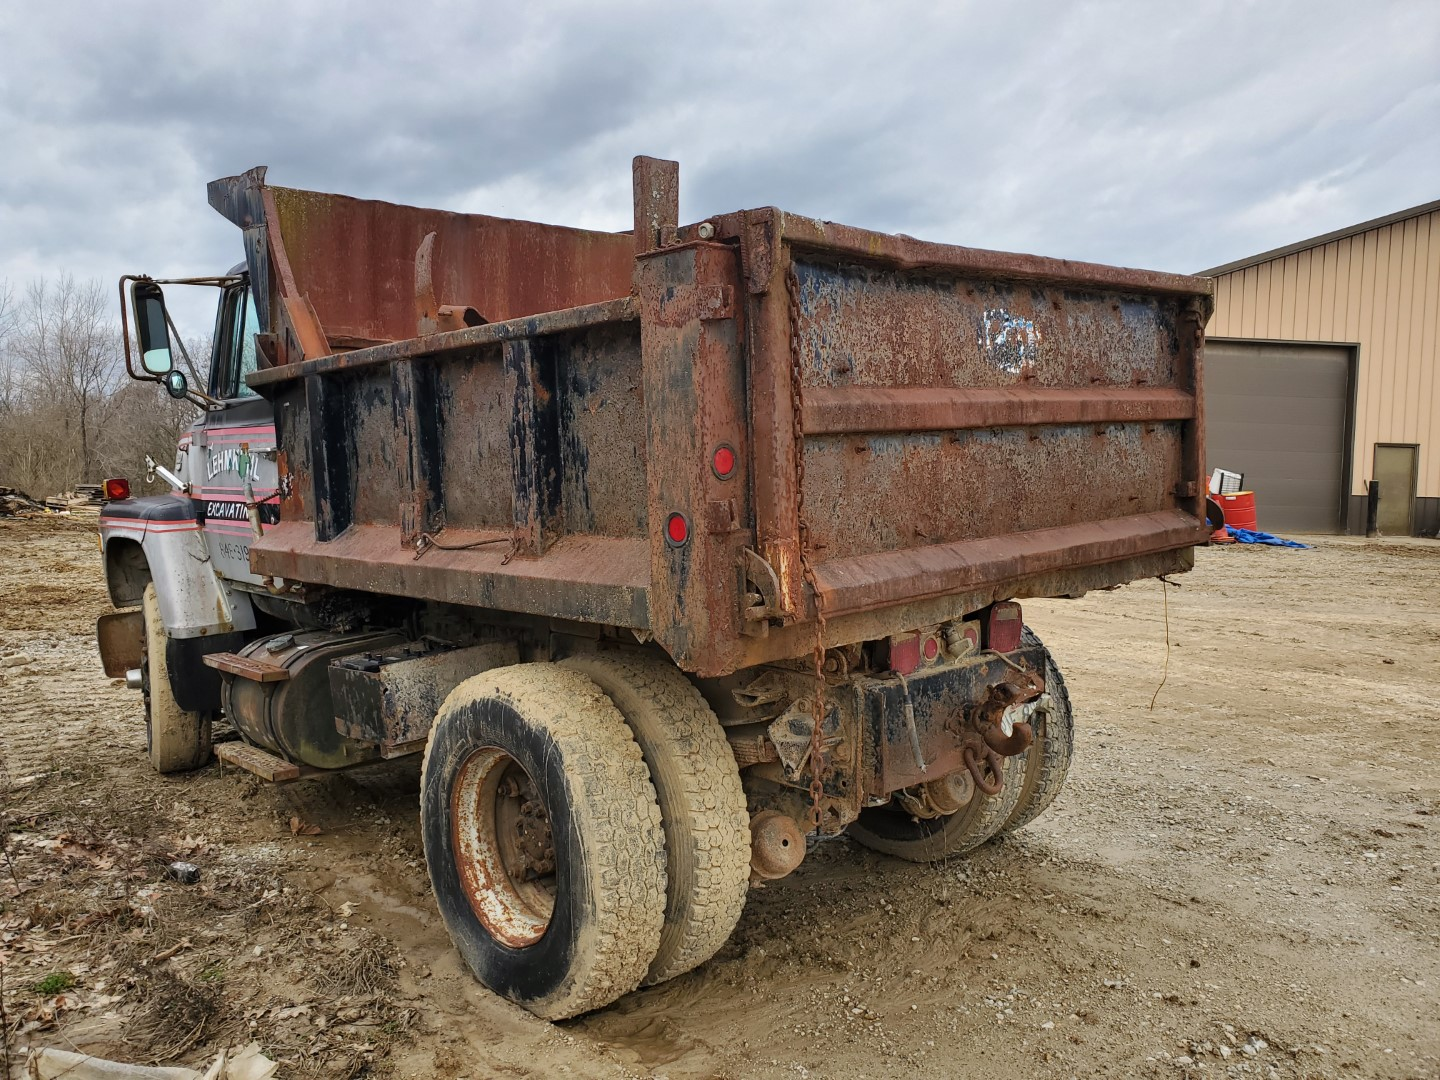 1976 Ford 8000 Single Axle Dump Truck, 9 ft Dump Bed, Manual Transmission, 2-Speed Axle, 86,500 Mile - Image 2 of 6